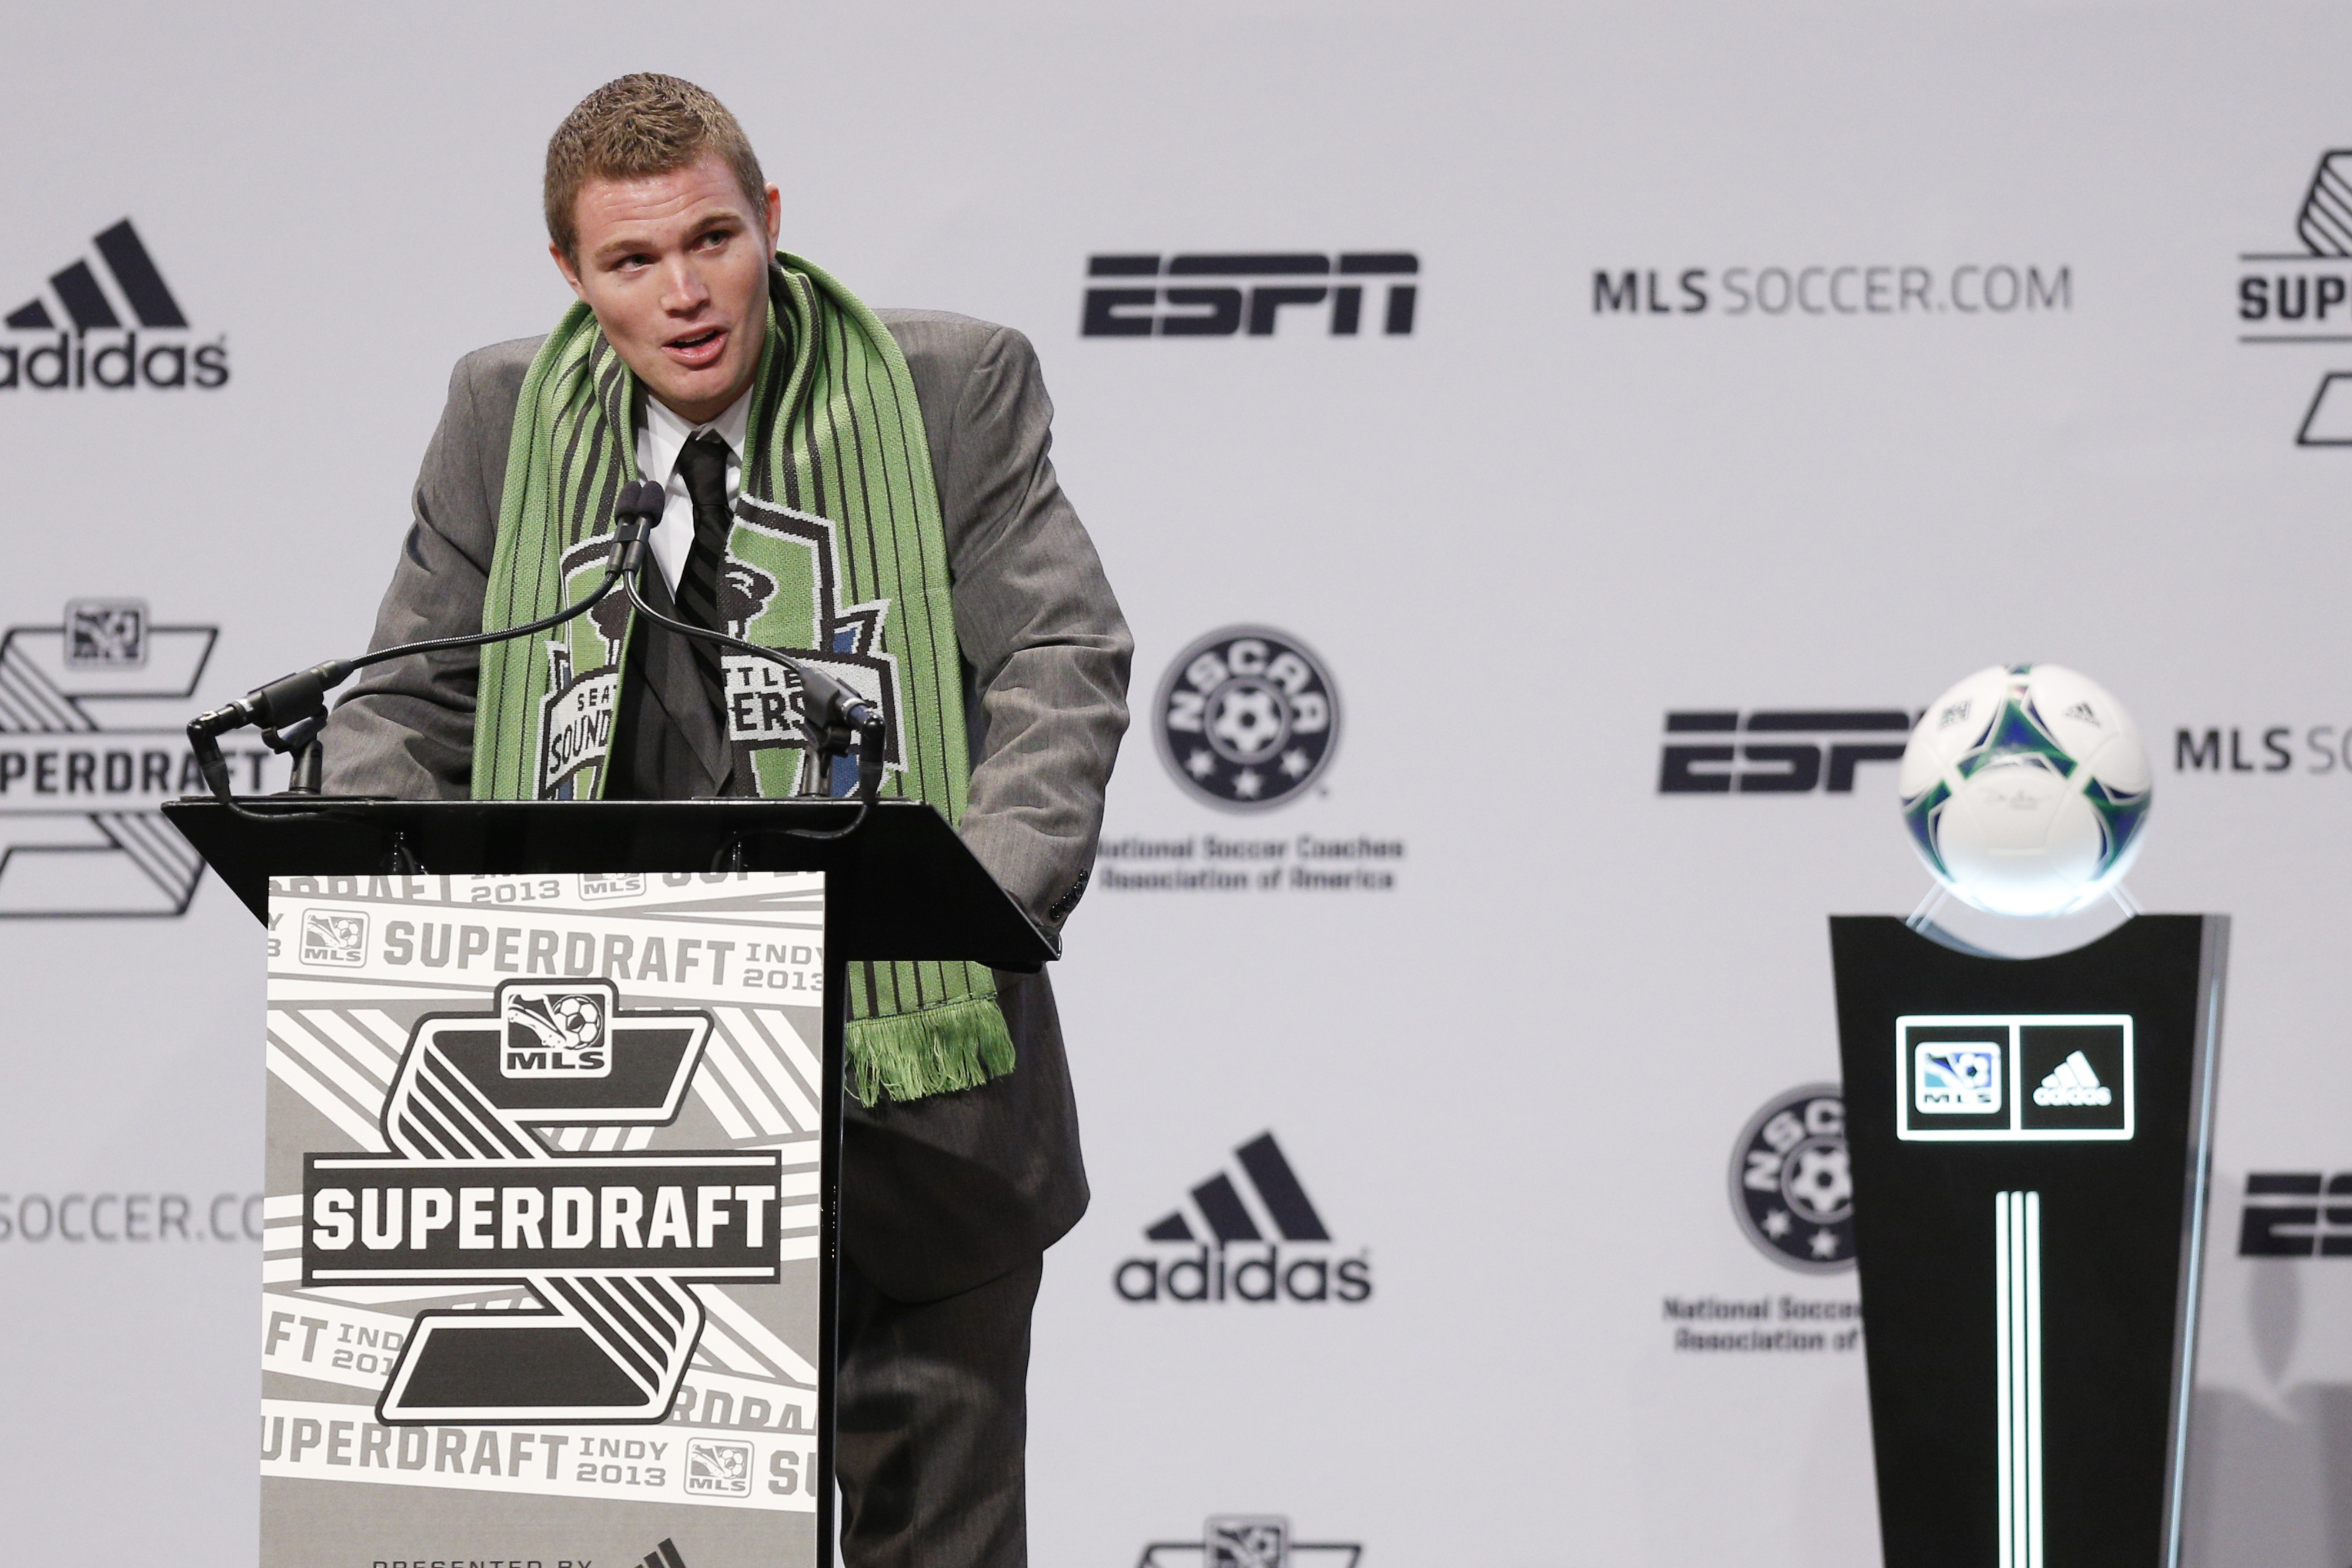 Can Indiana repeat even without Zavaleta's contributions?